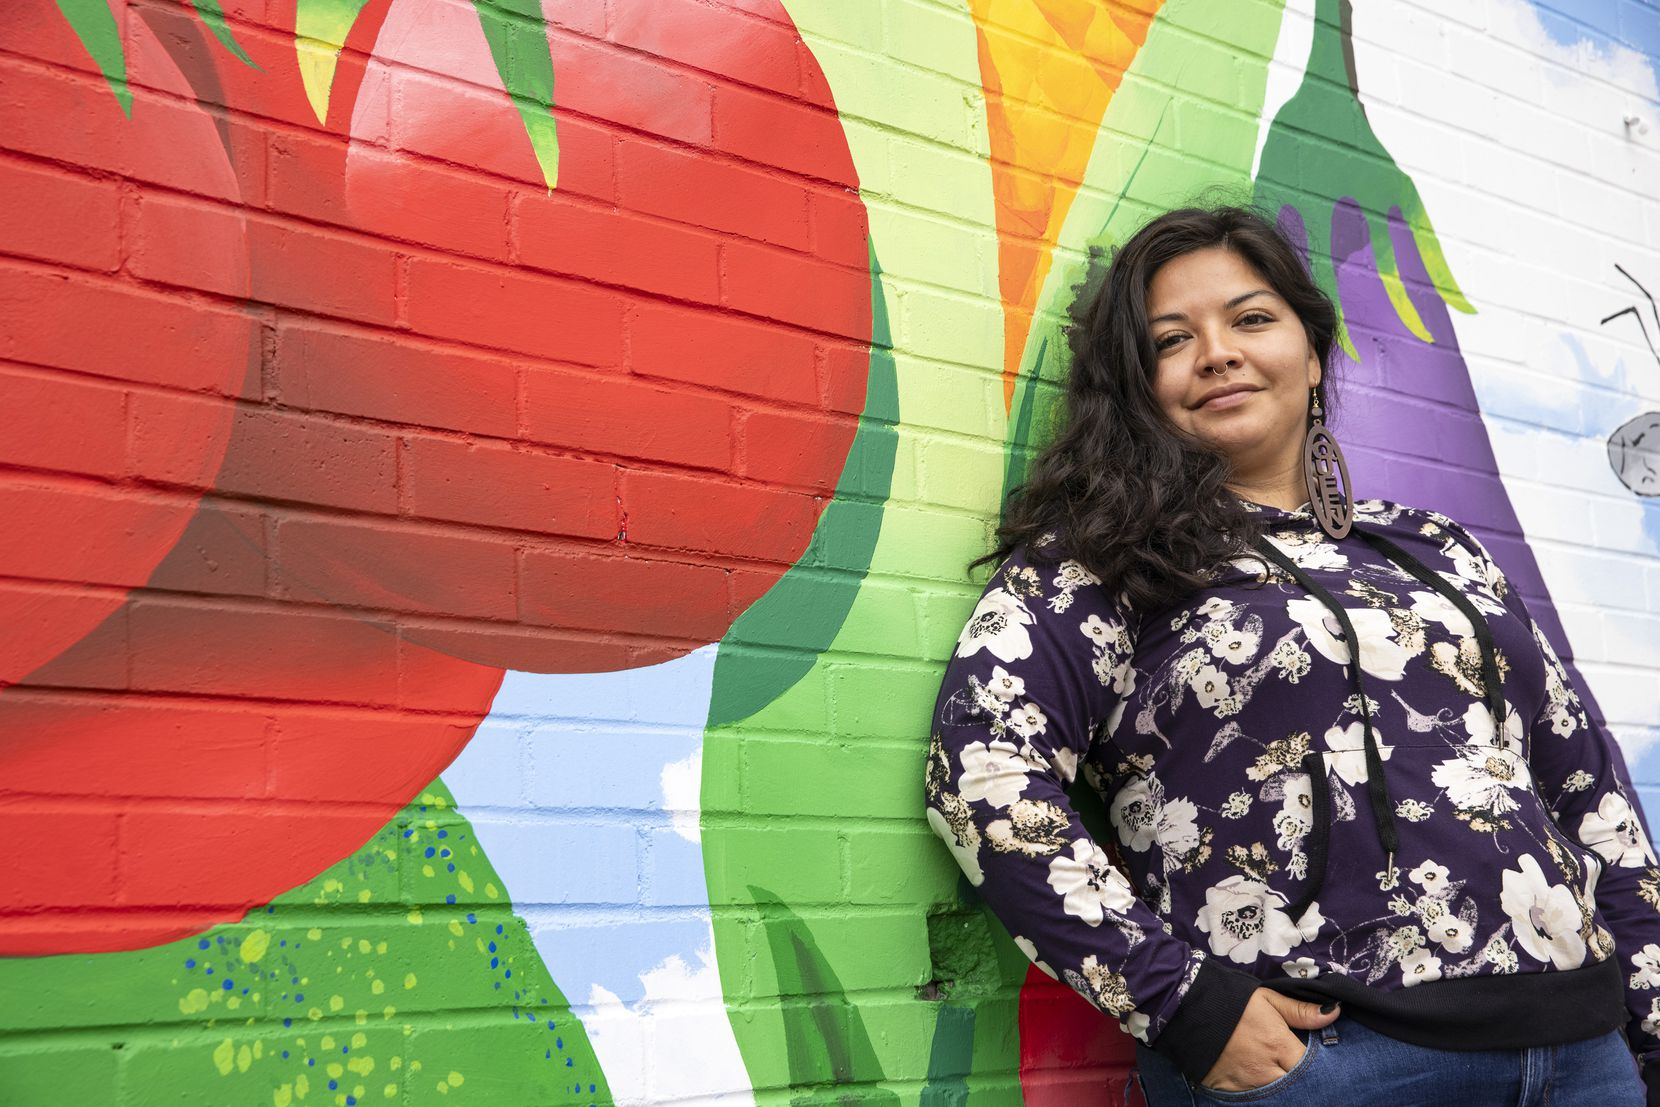 Danae Gutierrez, co-founder and executive director of the nonprofit Harvest Project Food Rescue, poses for a portrait at the 4DWN skatepark in Dallas.